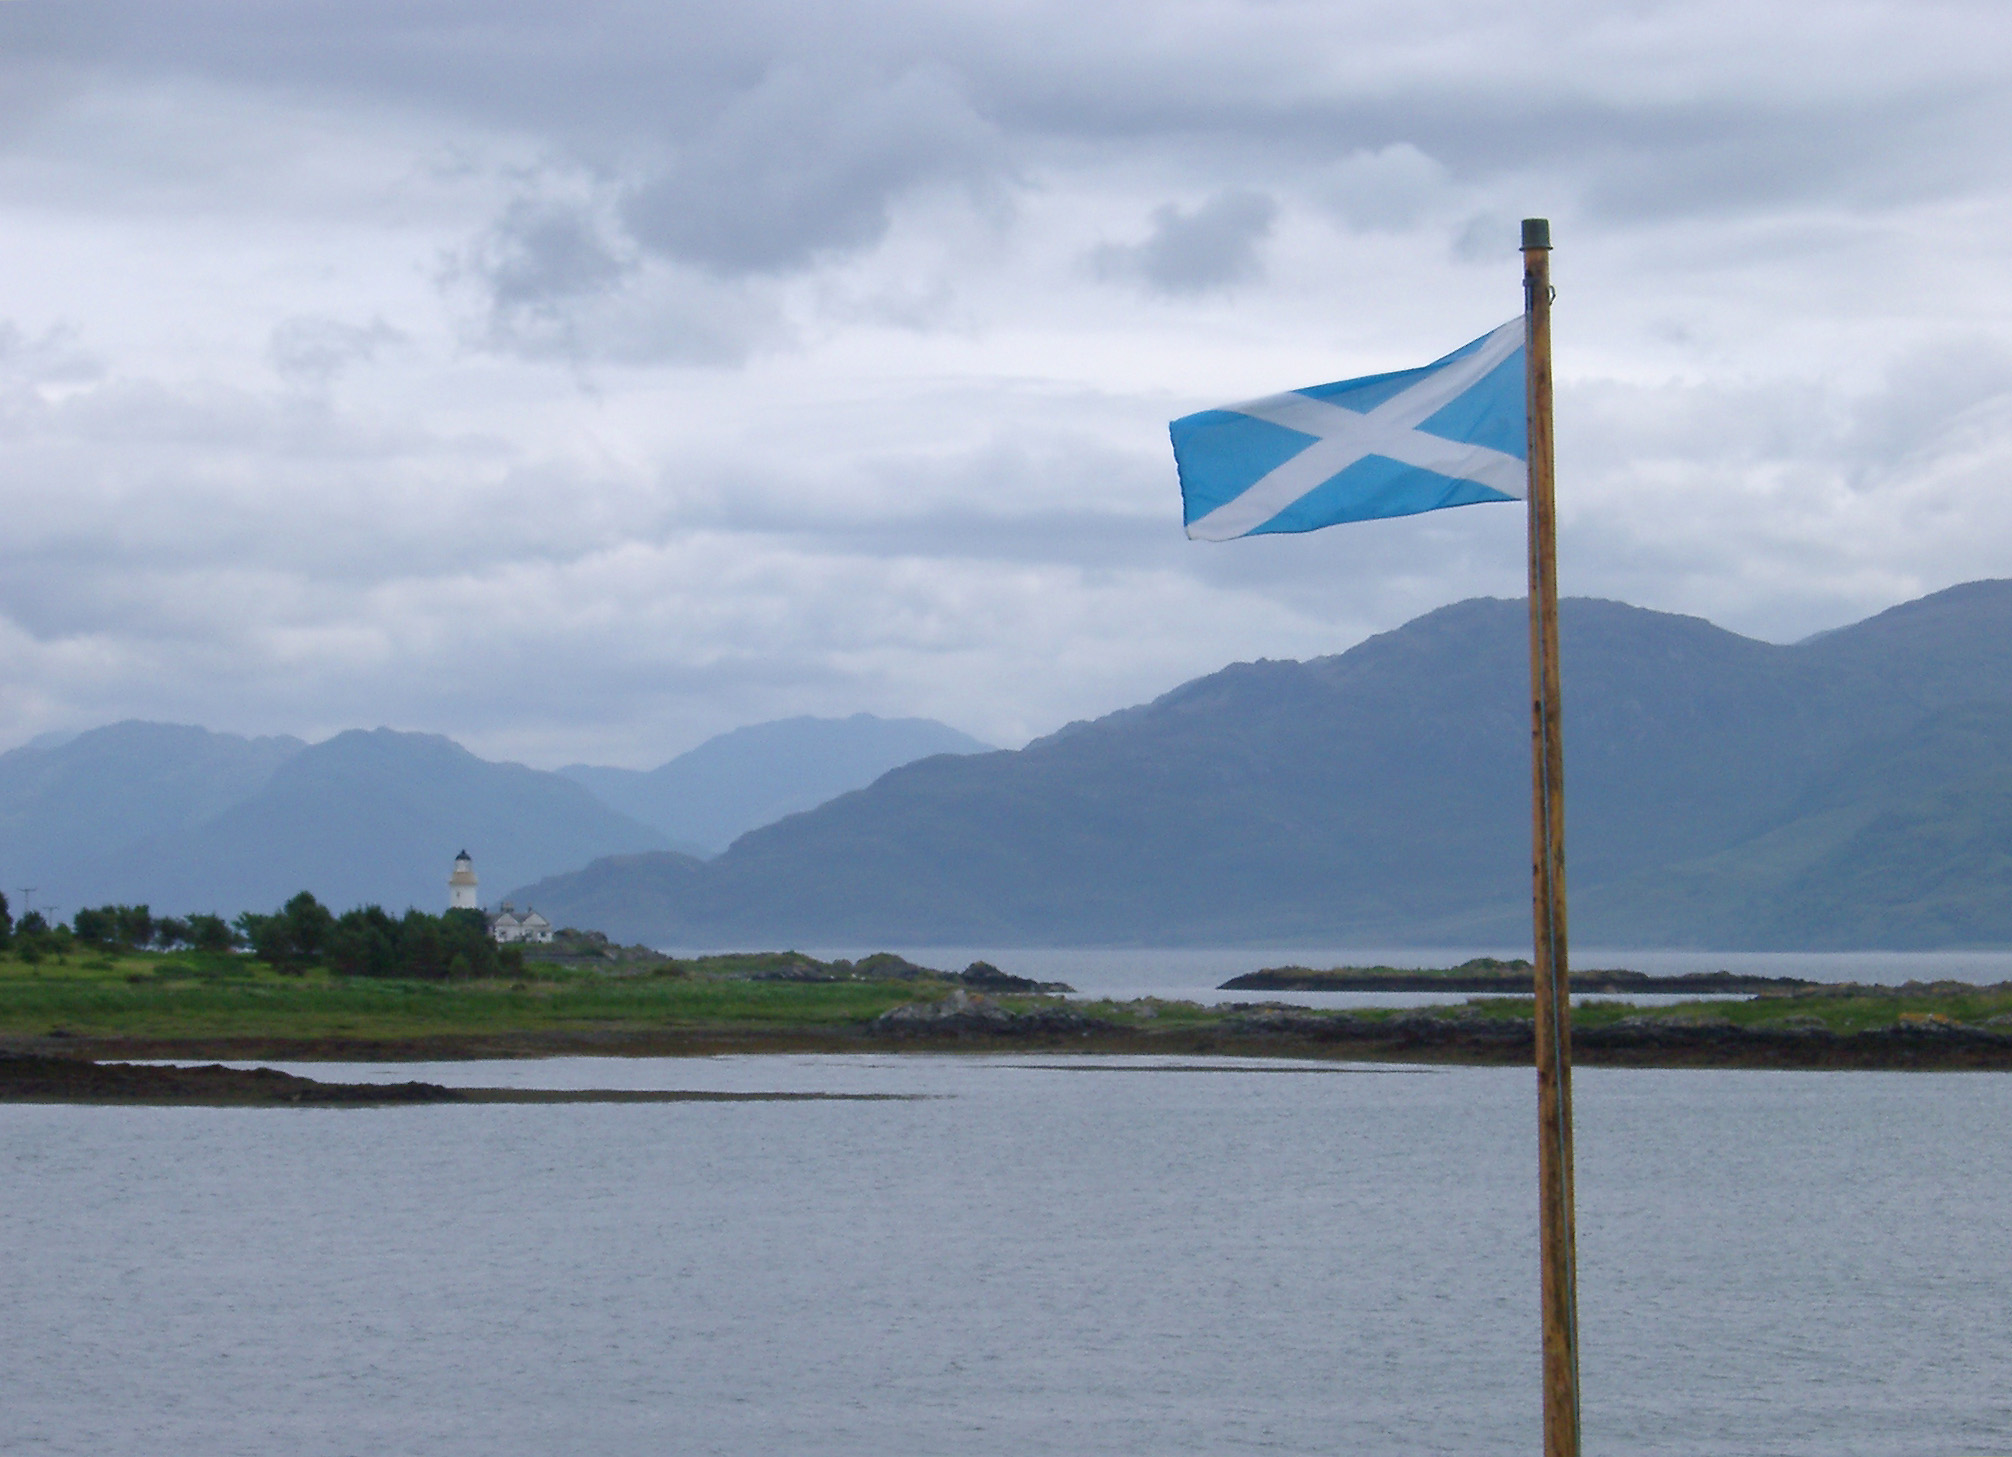 National flag of Scotland flying on a flagpole overlooking a placid loch on a cold cloudy day